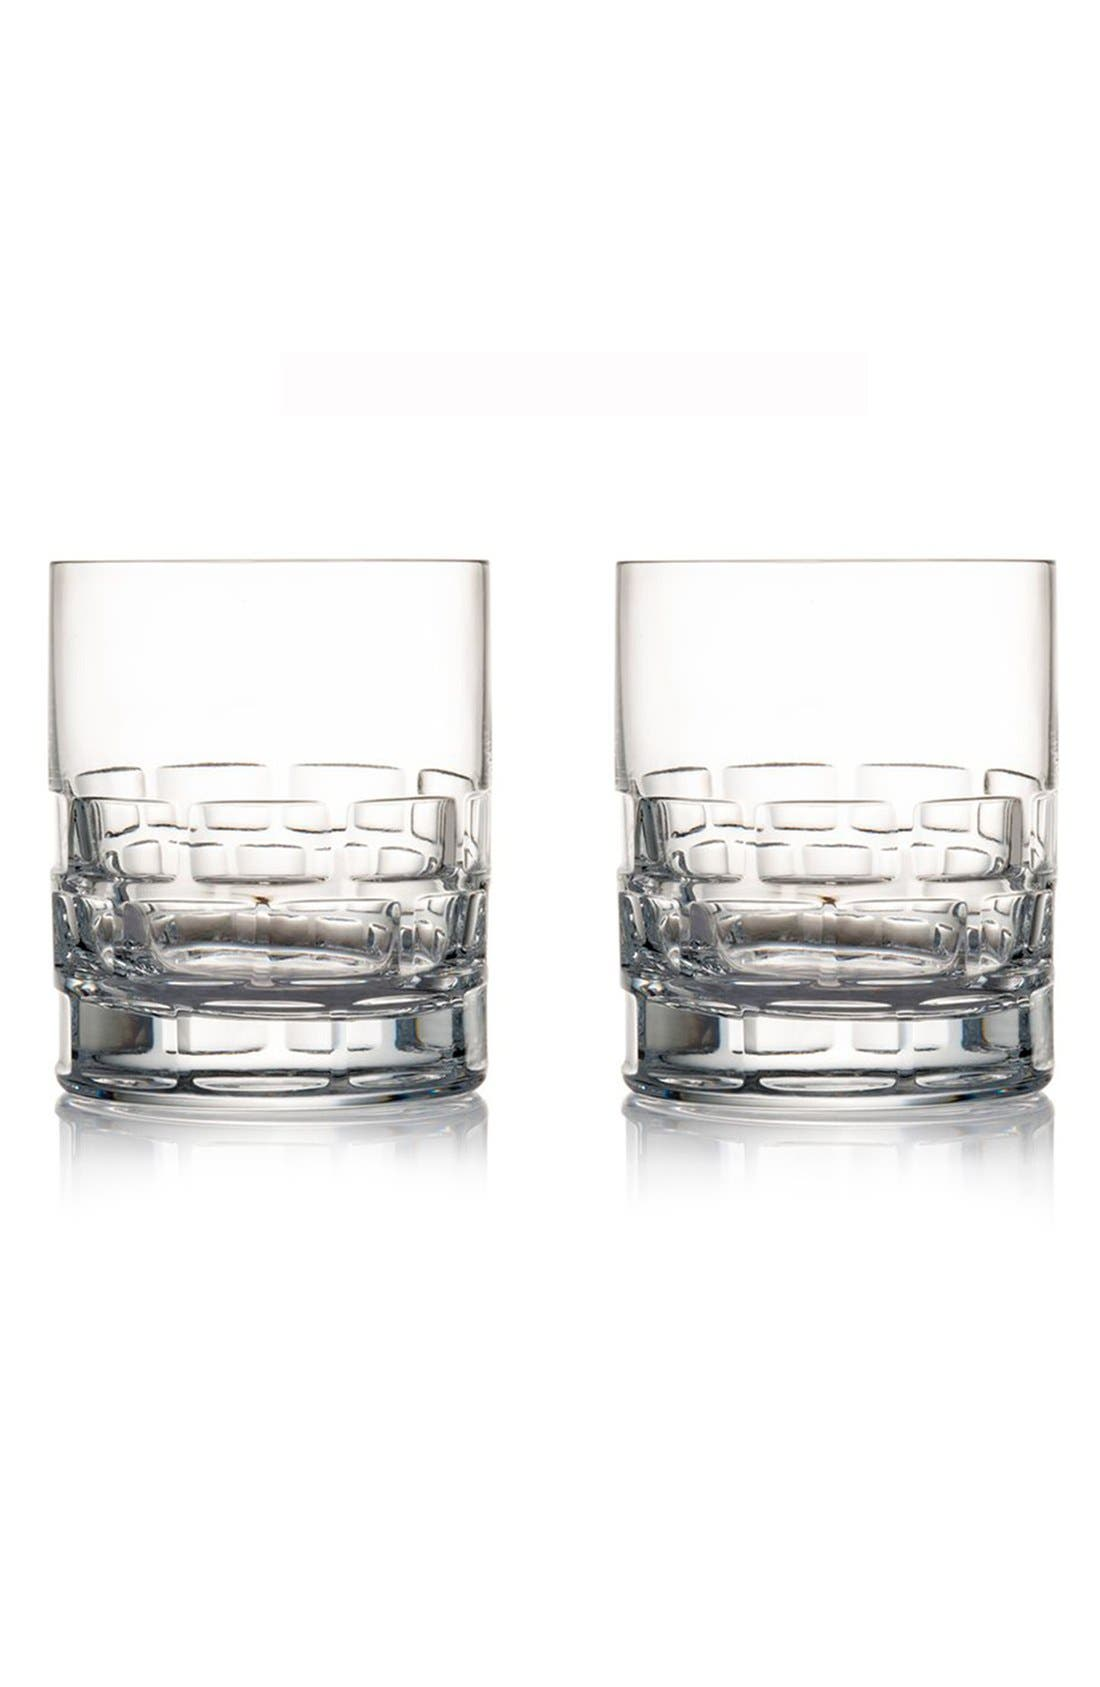 Rogaska Crystal 'Maison' Lead Crystal Double Old Fashioned Glasses (Set of 2)